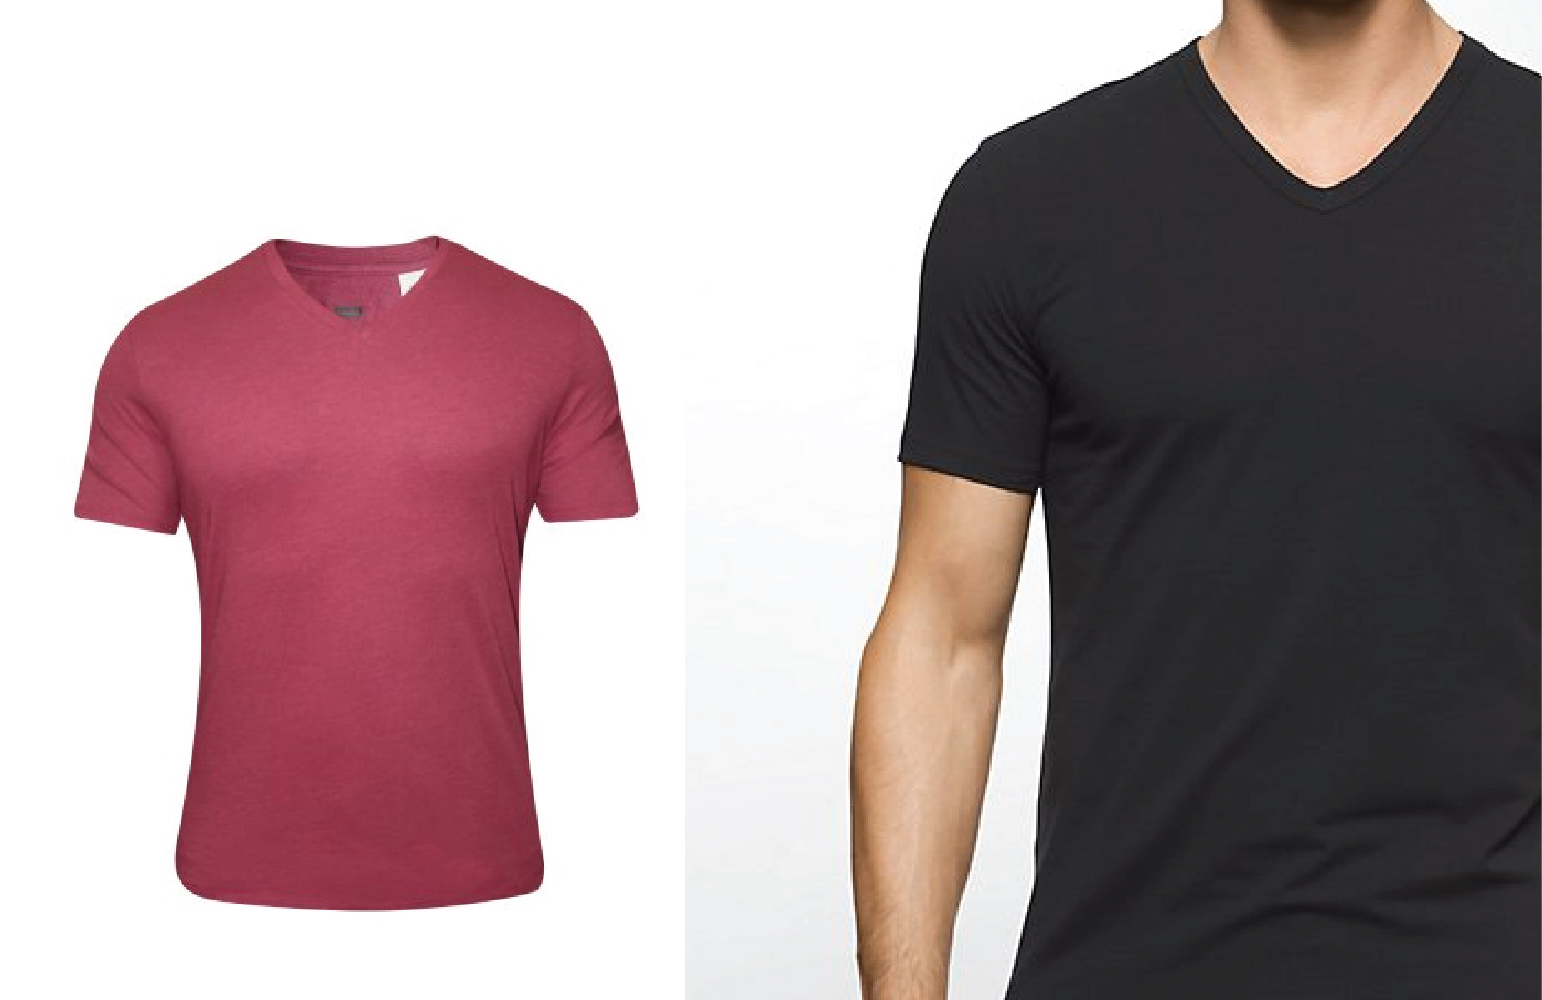 The V Neck T Shirt